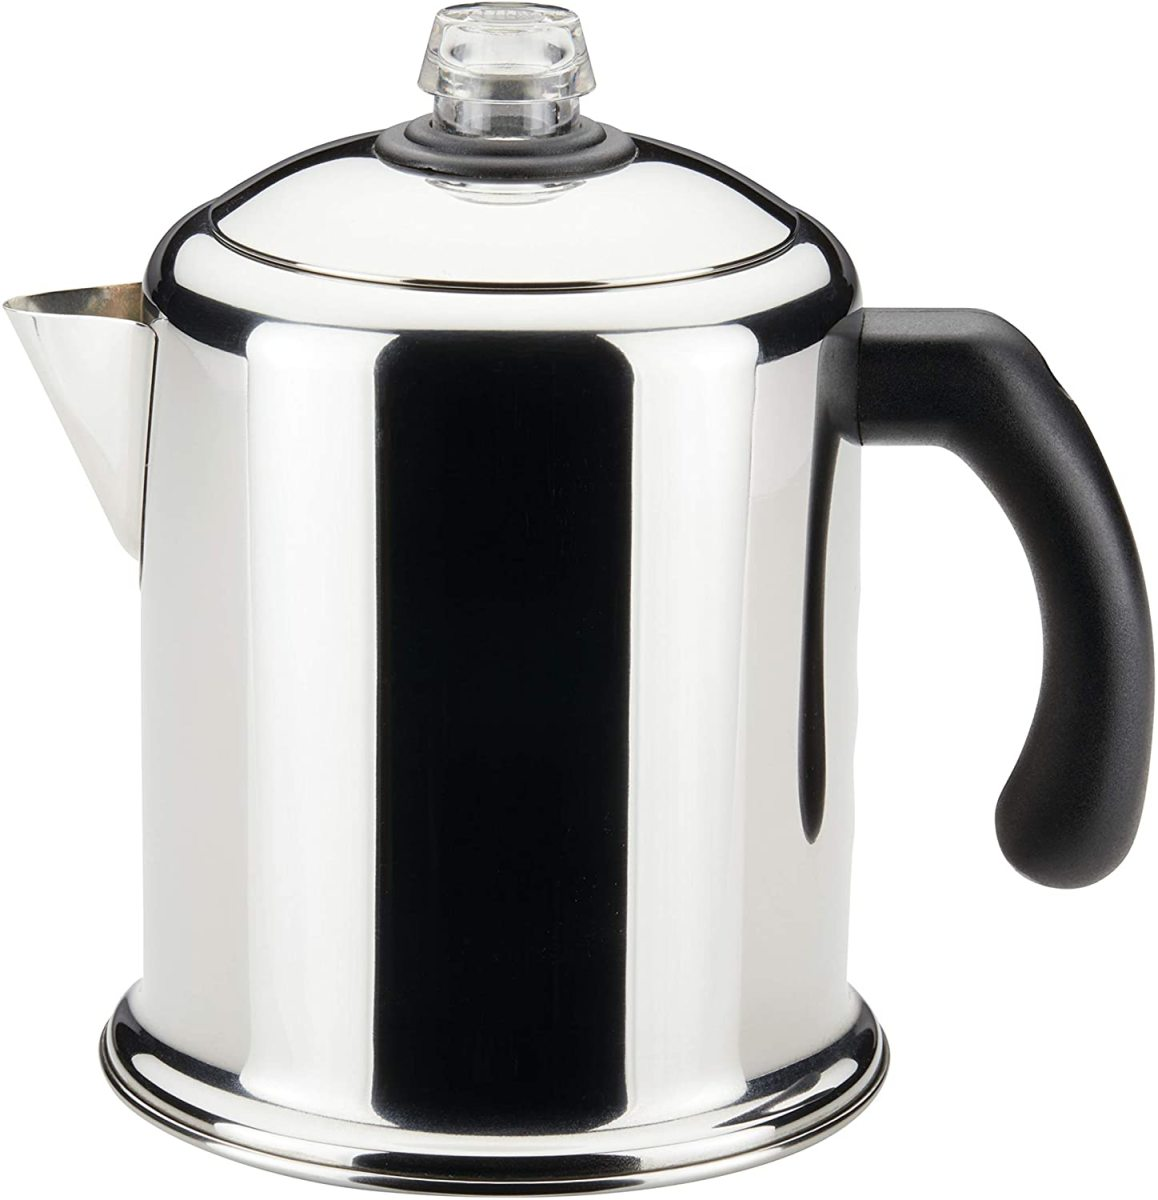 Farberware 50124 Classic Yosemite Stainless Steel uses an attractive and practical design and offers excellent value for money.